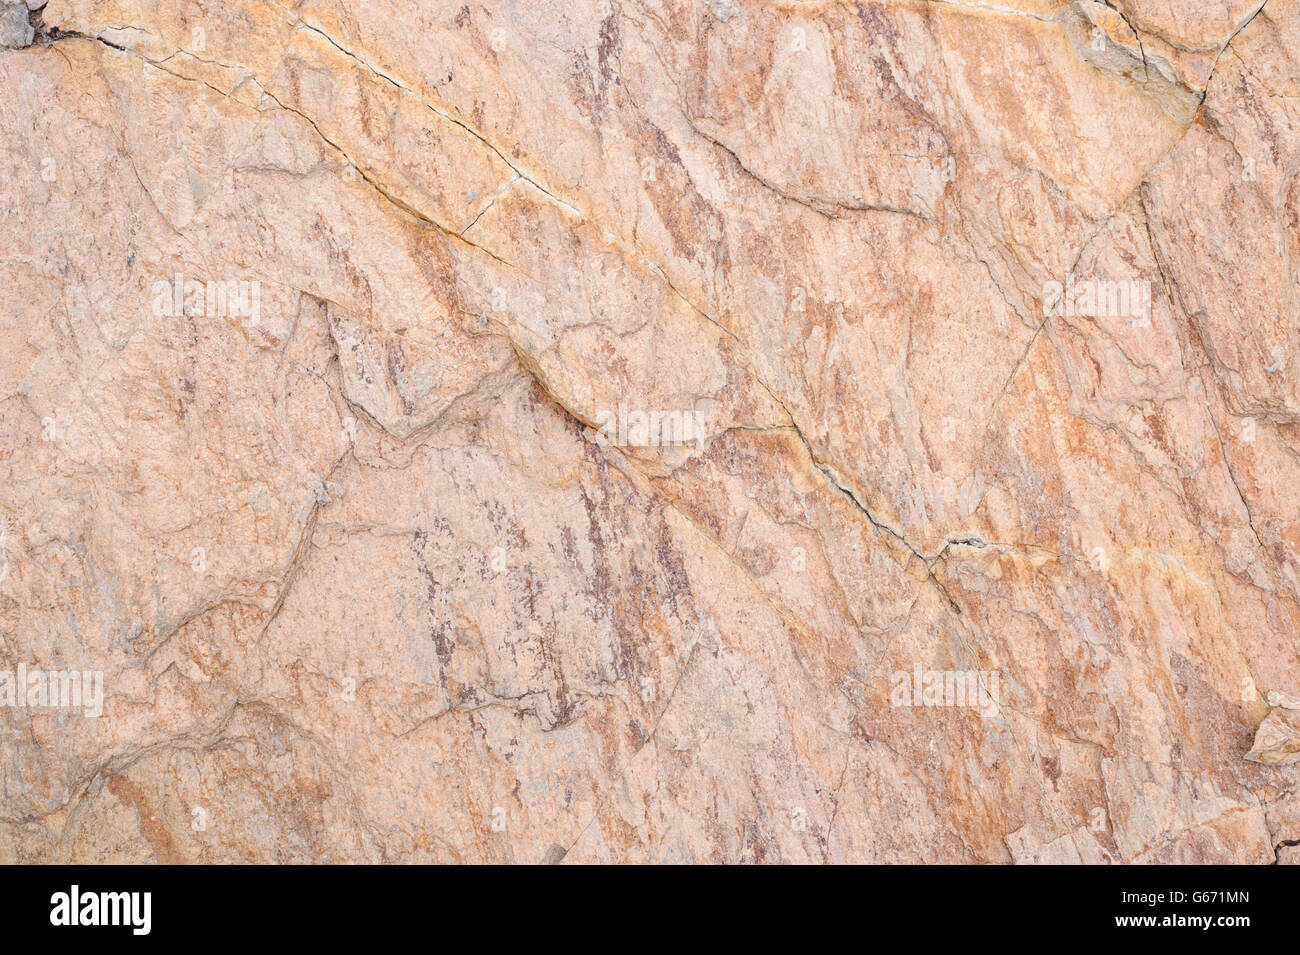 Natural stone sculpture background - Stock Image